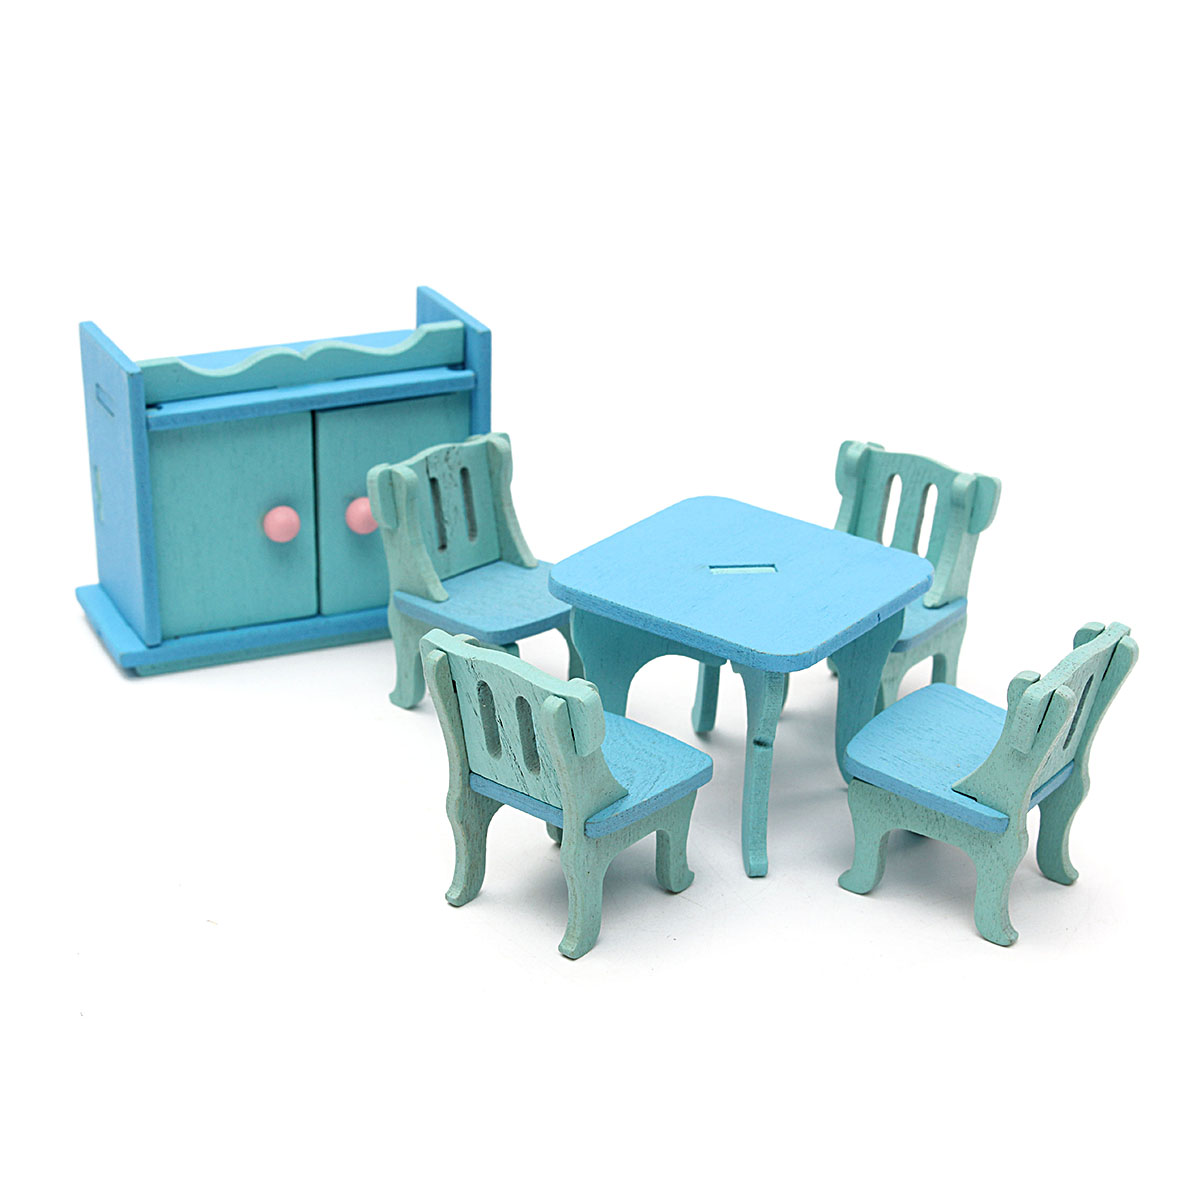 Wooden furniture dolls house family miniature 6 set room child kids gift toys ebay Dolls wooden furniture